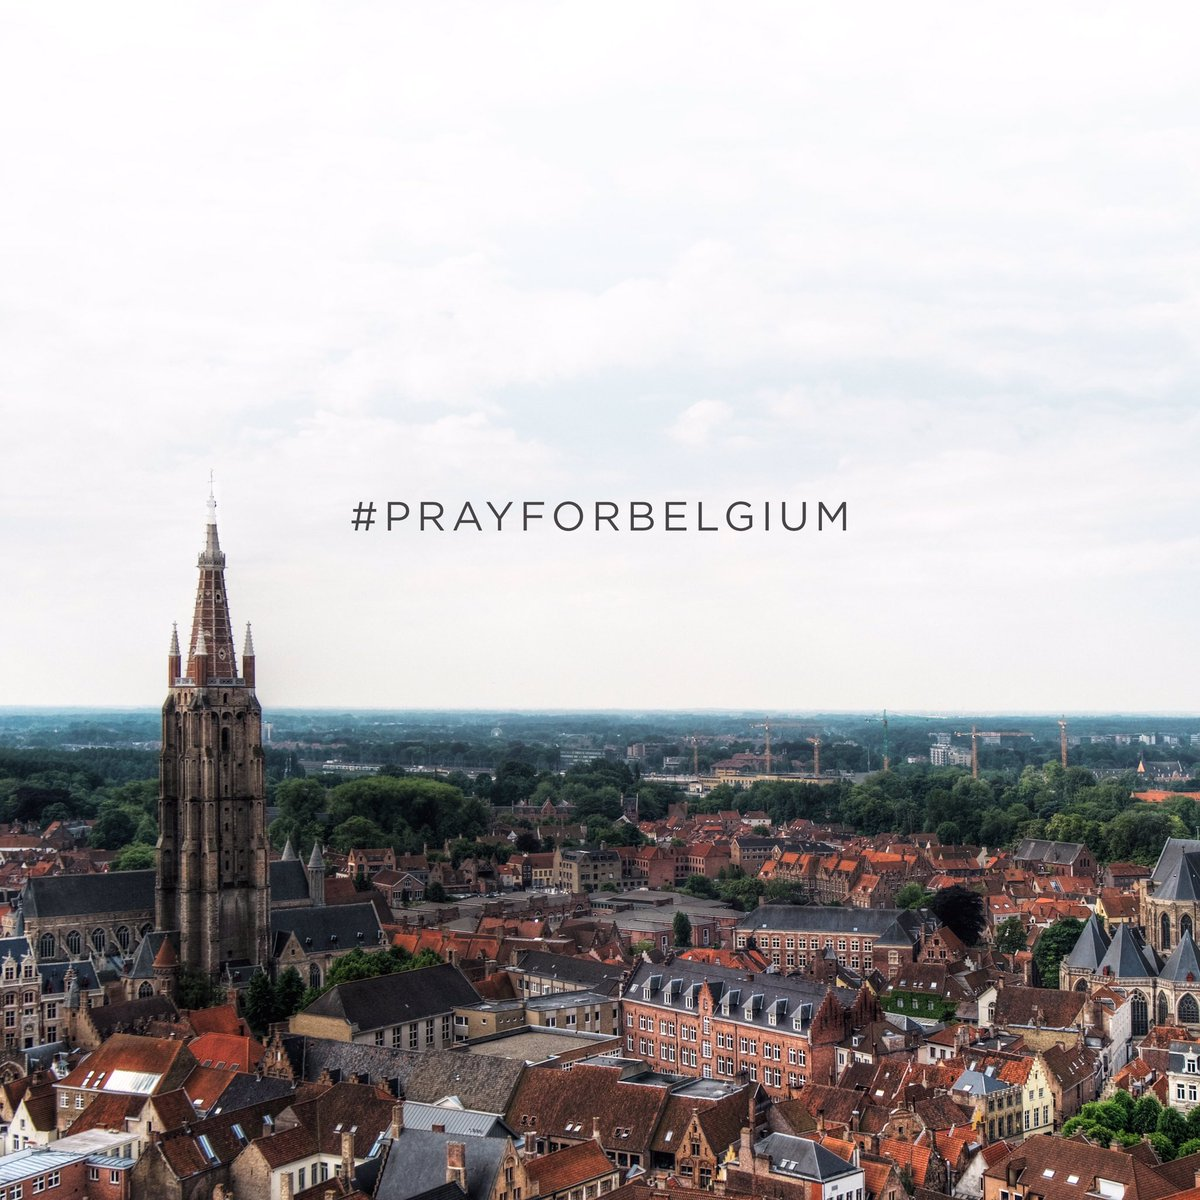 #PrayForBelgium https://t.co/zleRvyN0x7